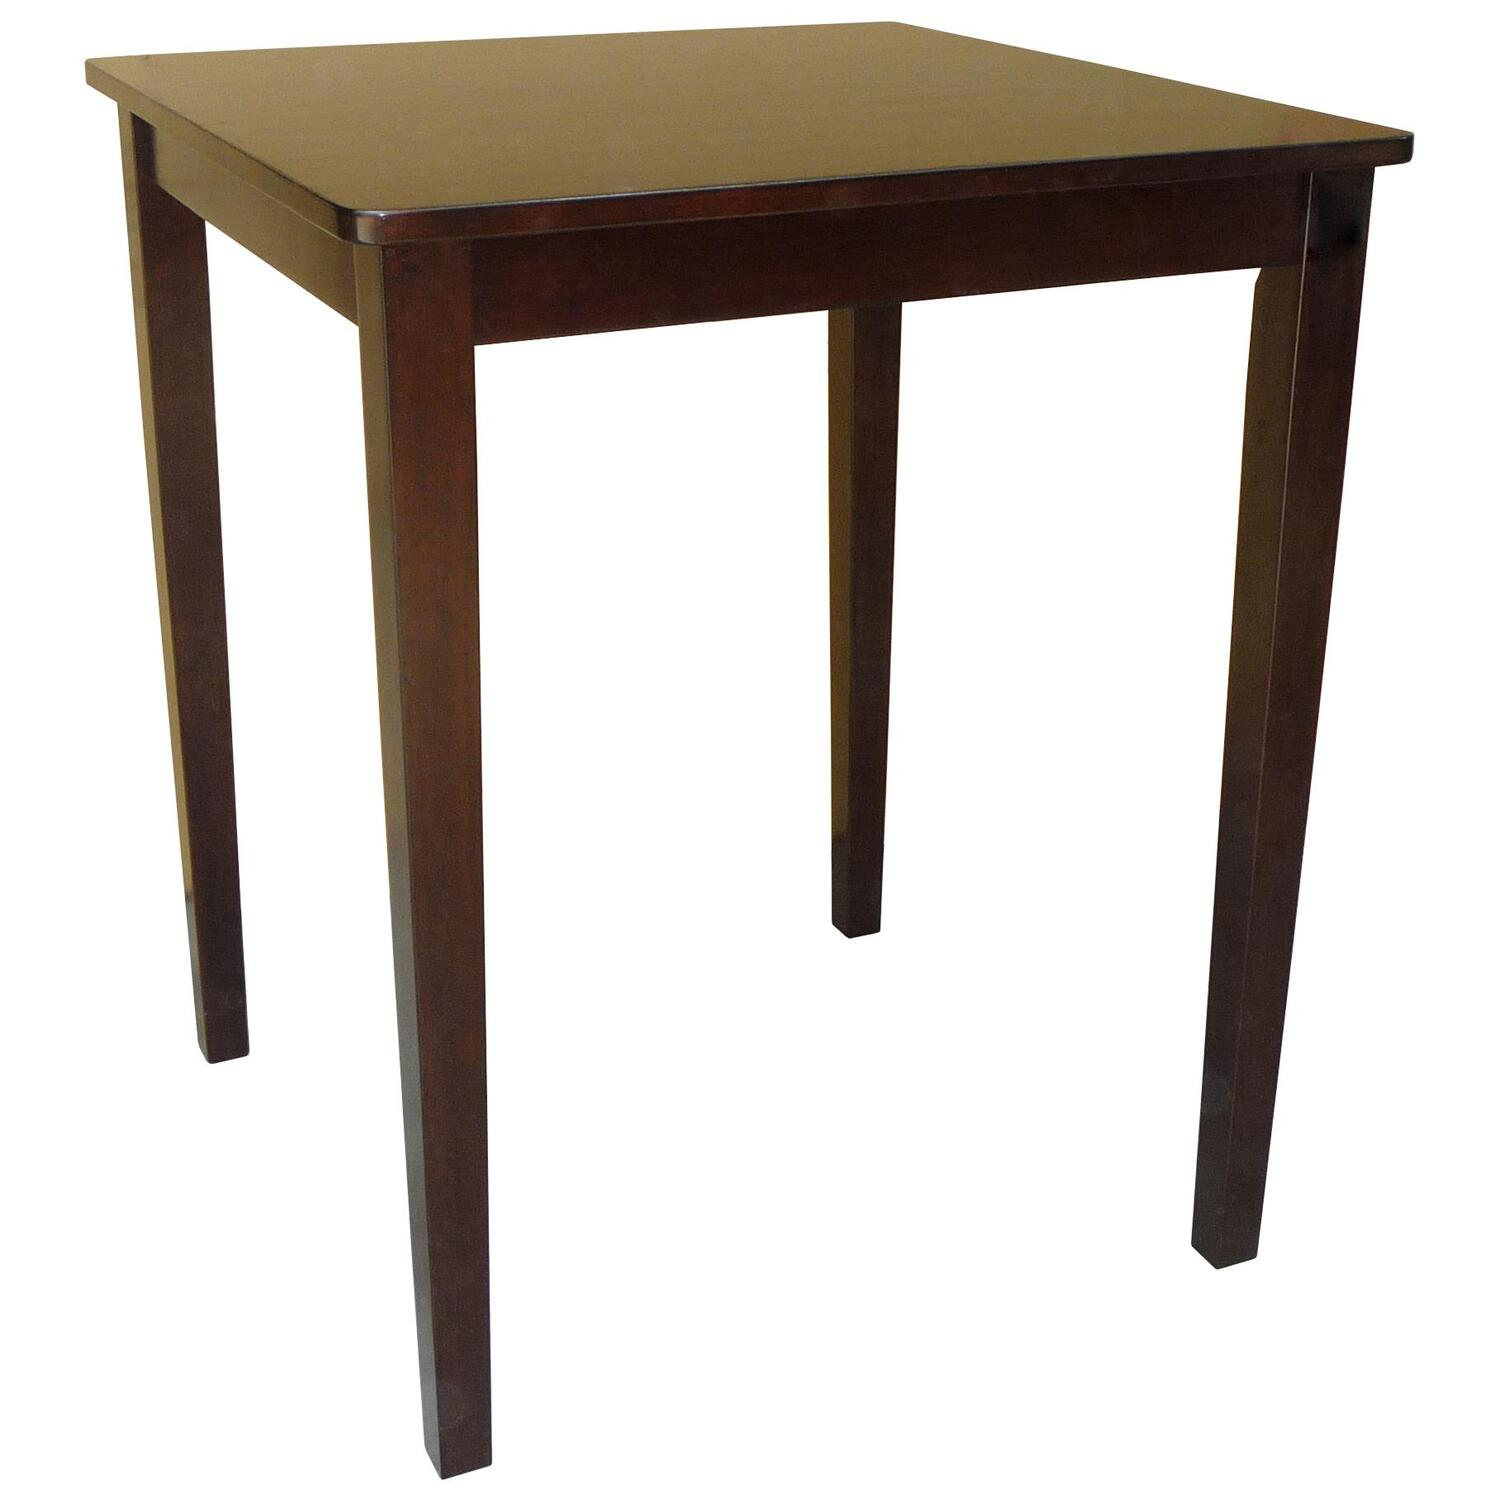 International concepts shaker styled counter height table for Square counter height table